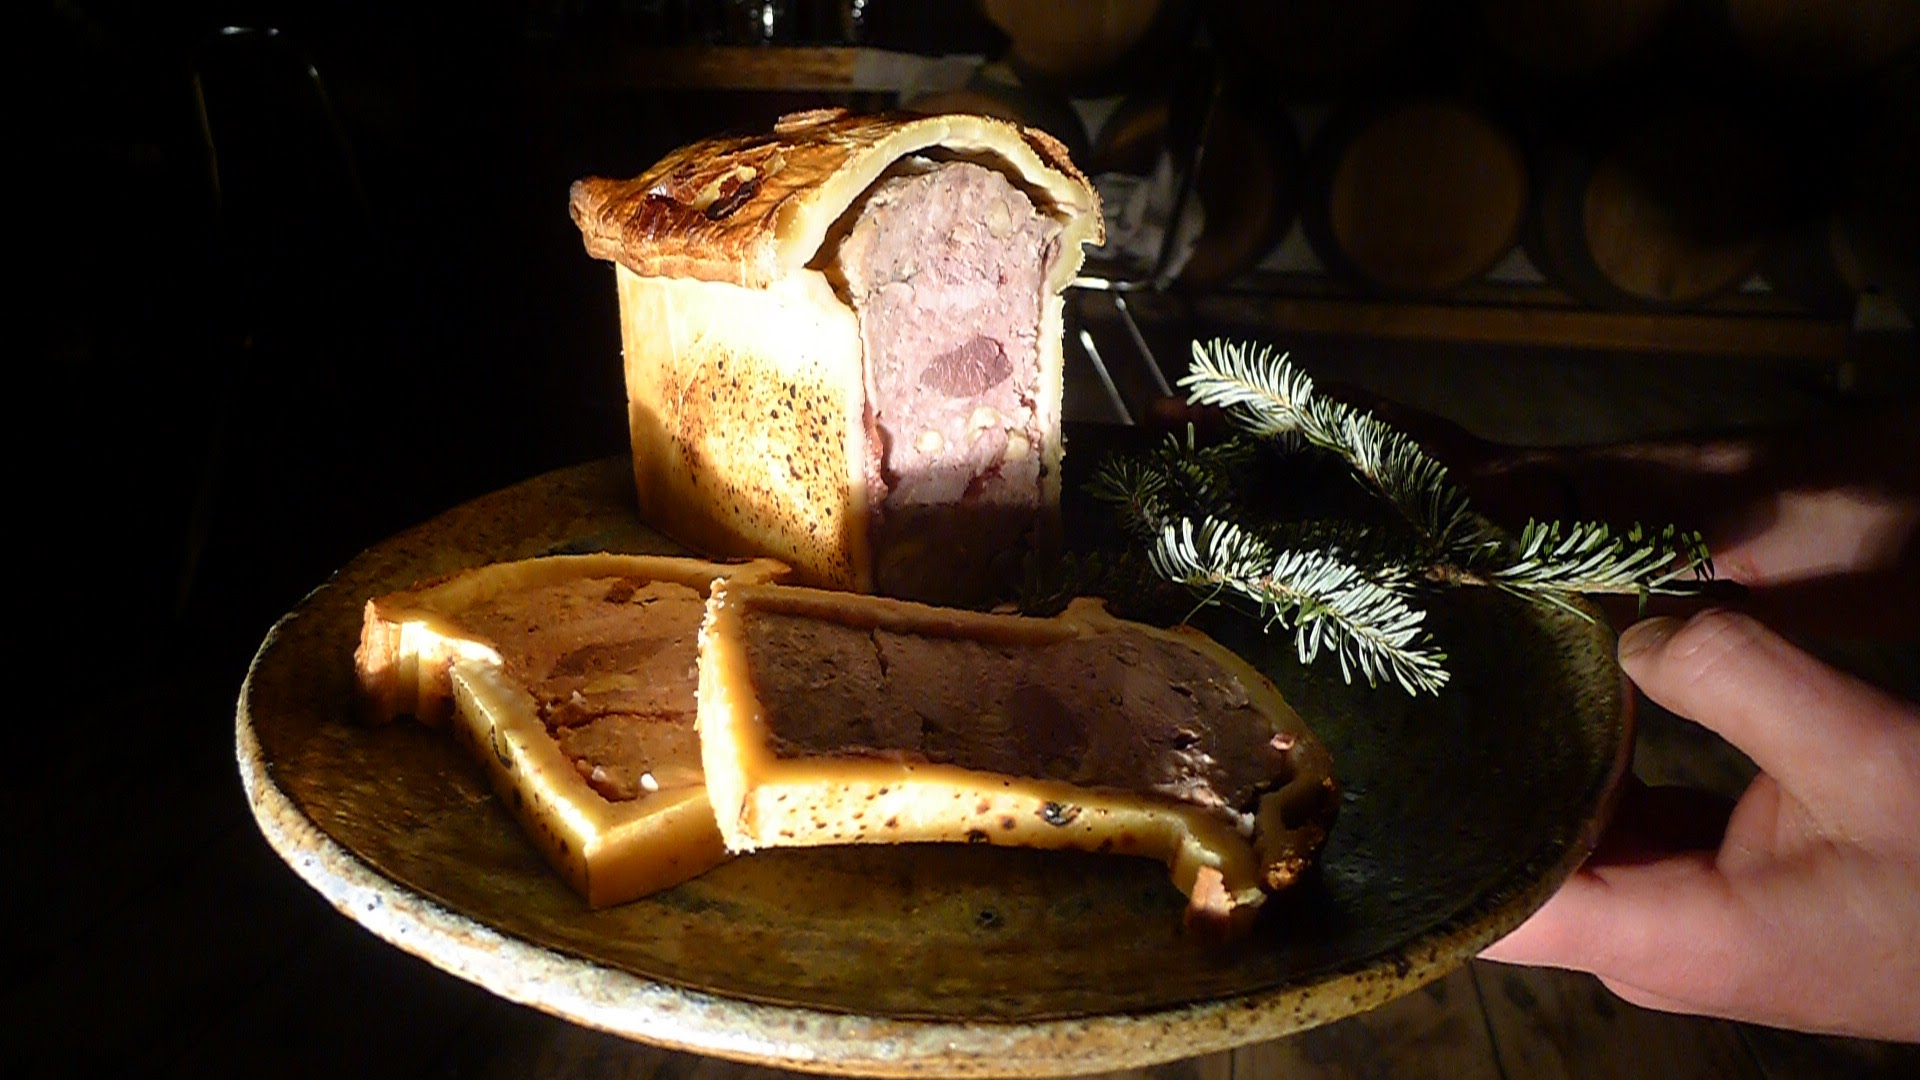 Game Paté-En-Croute, stuffed with pheasant, duck, goose, rabbit, and venison. Served with cressy mustard and cornichon. Mind-blowing, and served with some vintage Hinterland Rosé.